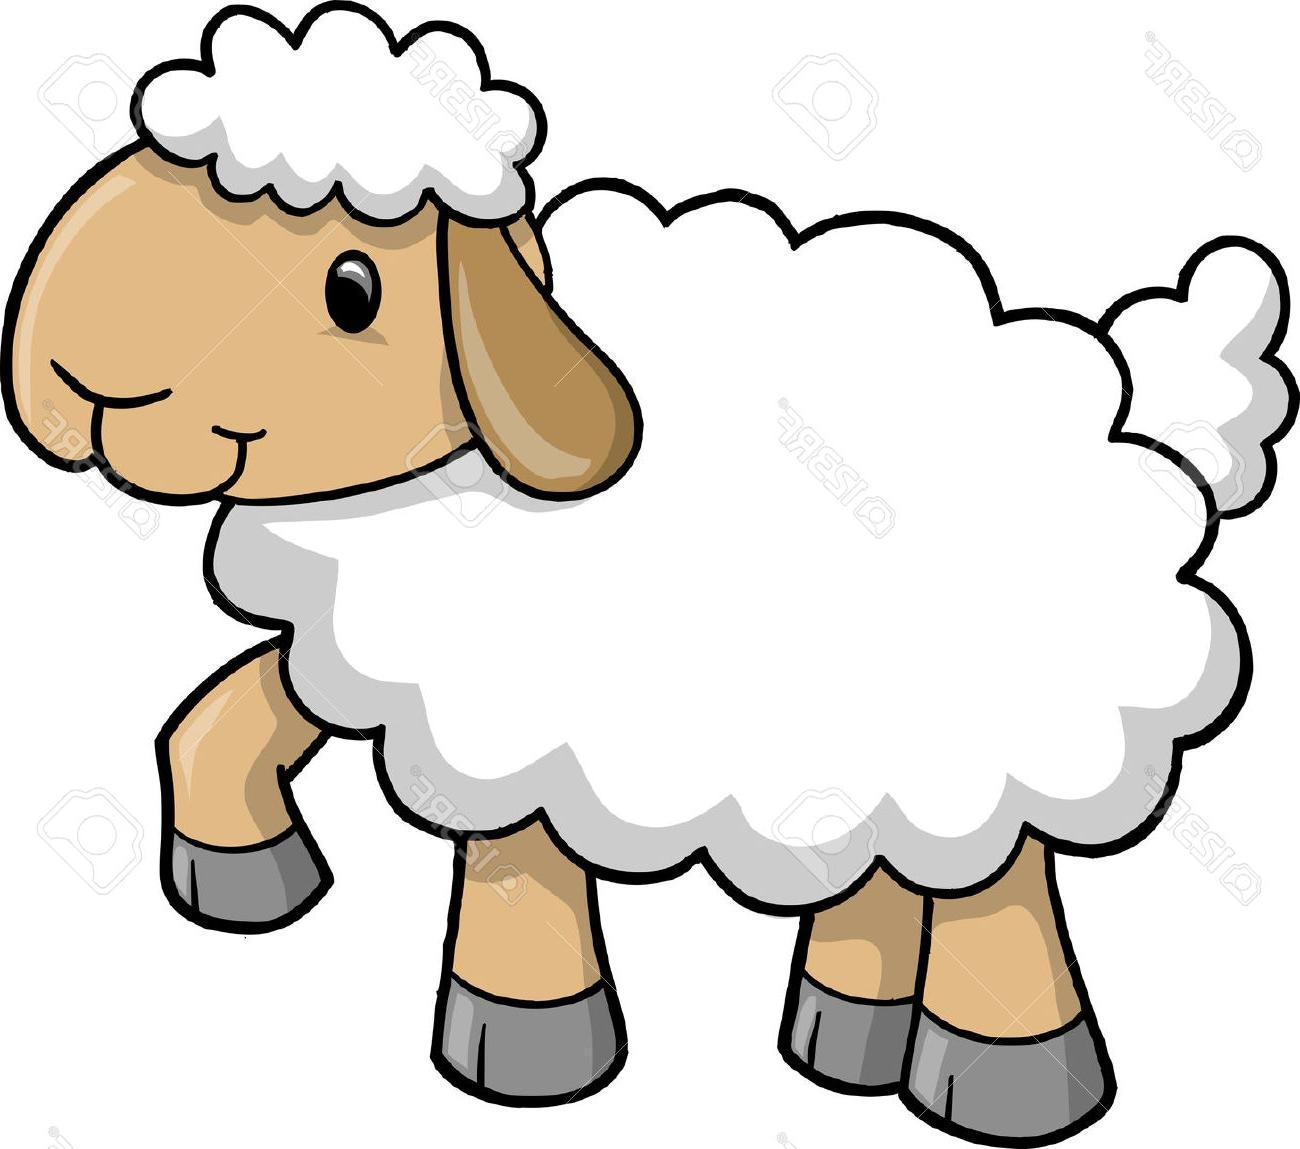 Clipart sheep. Unique gallery digital collection